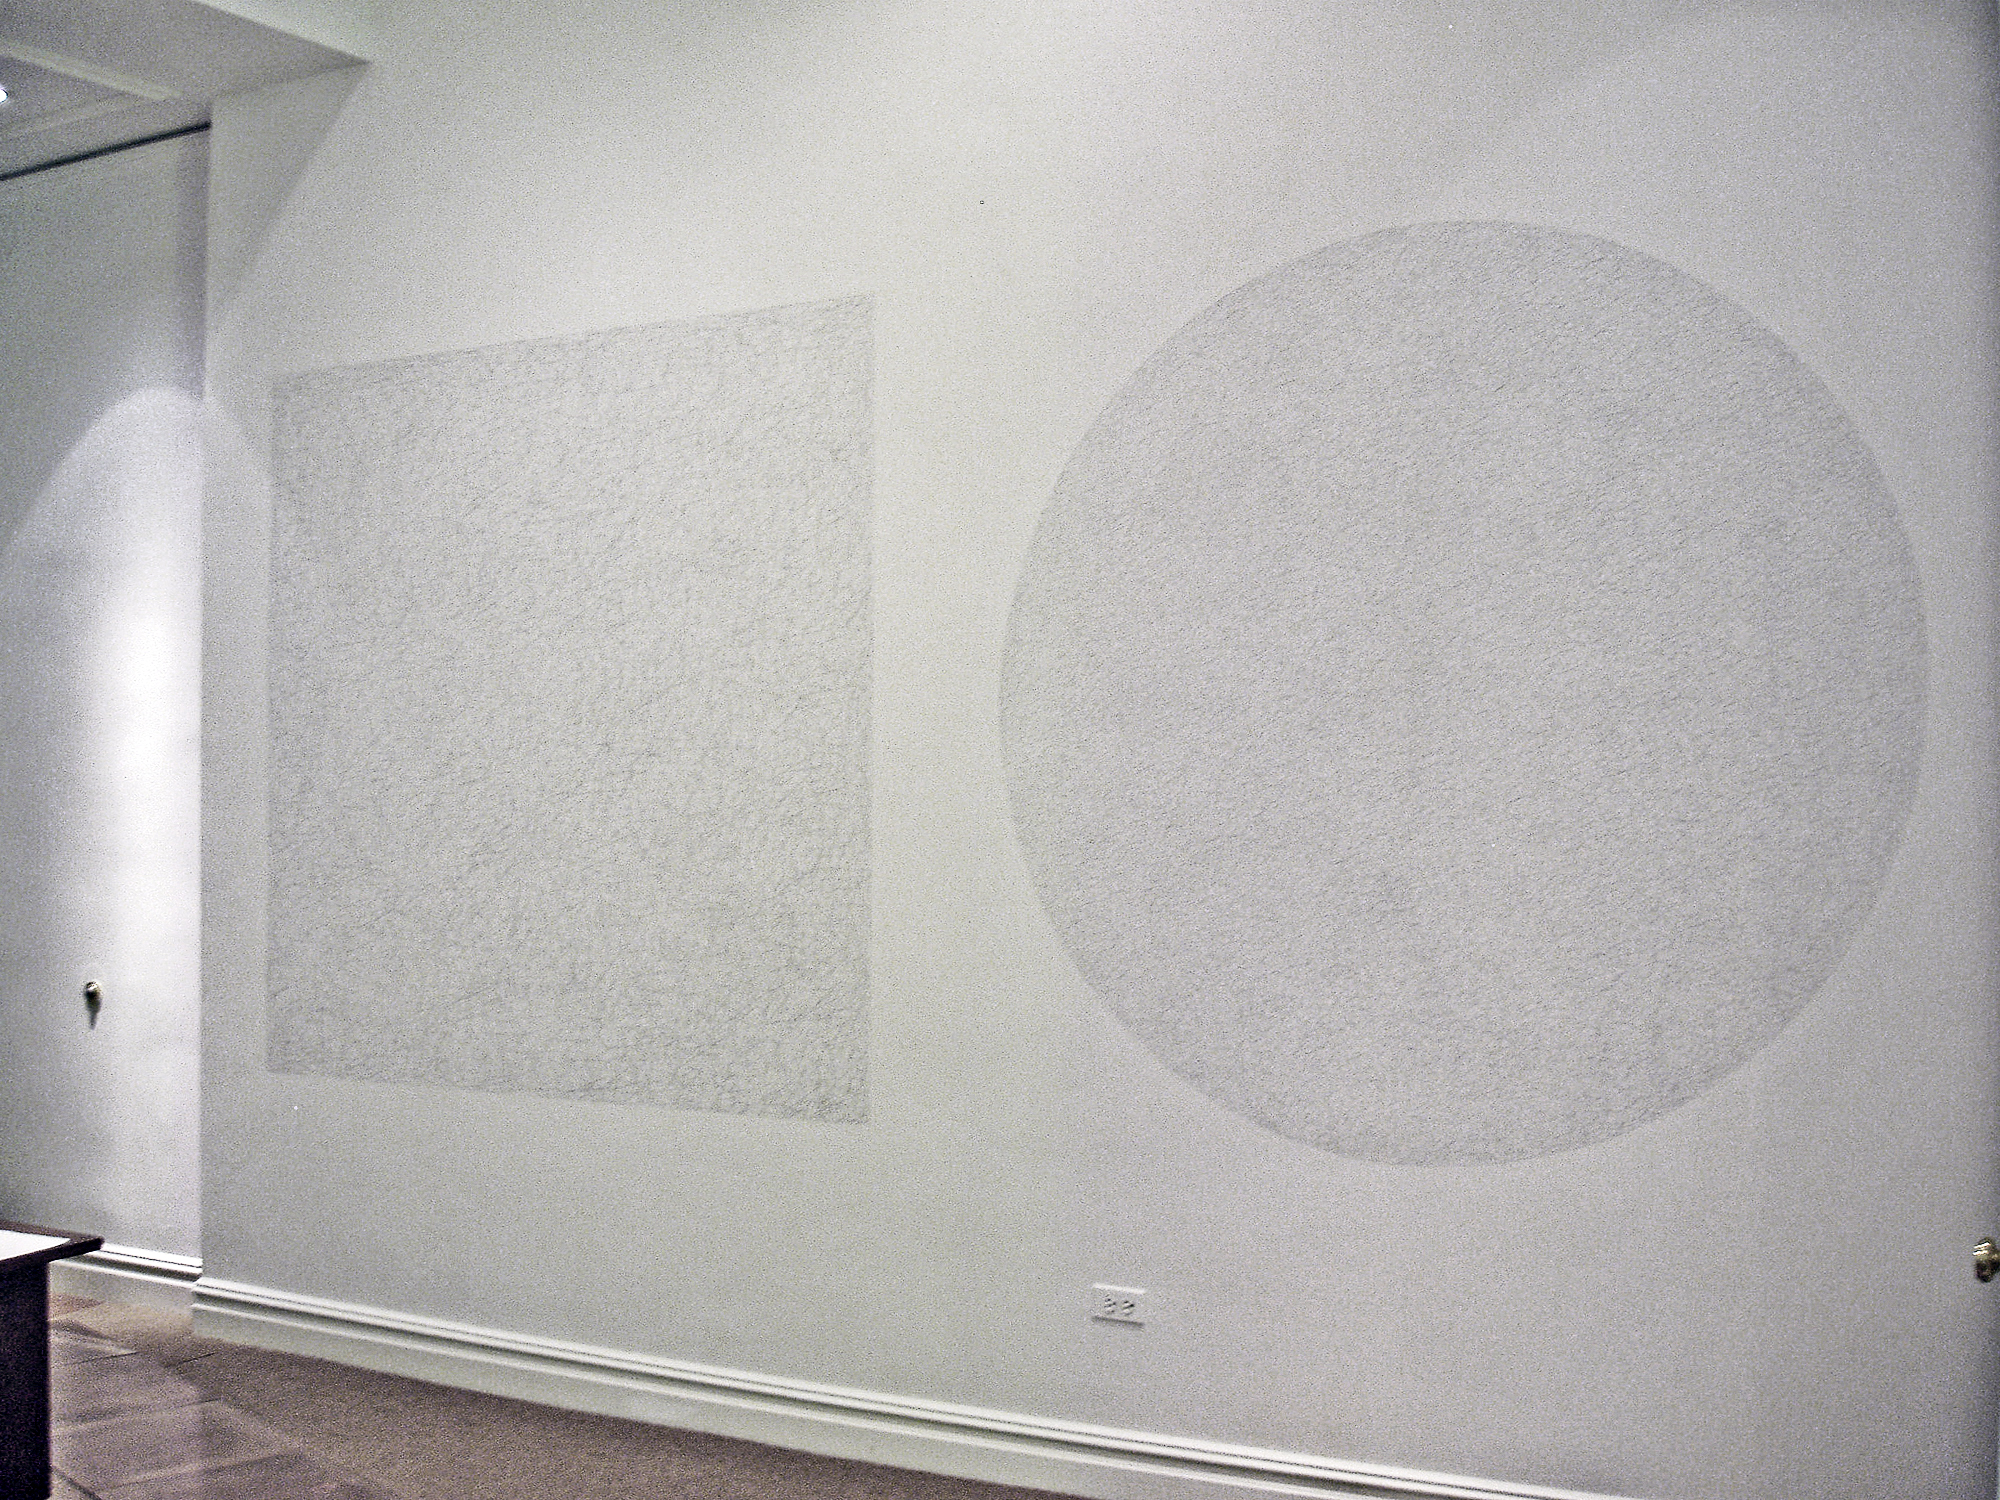 * Installation shot from the show at Bjorn Ressle Gallery in New York    Sol LeWitt WALL DRAWING #1024, 2002   Within a six by six feet square, 10,000 straight lines approximately six inches each drawn with pencil at random and within a six foot diameter circle, 10,000 not straight lines approximately six inches each drawn with pencil at random